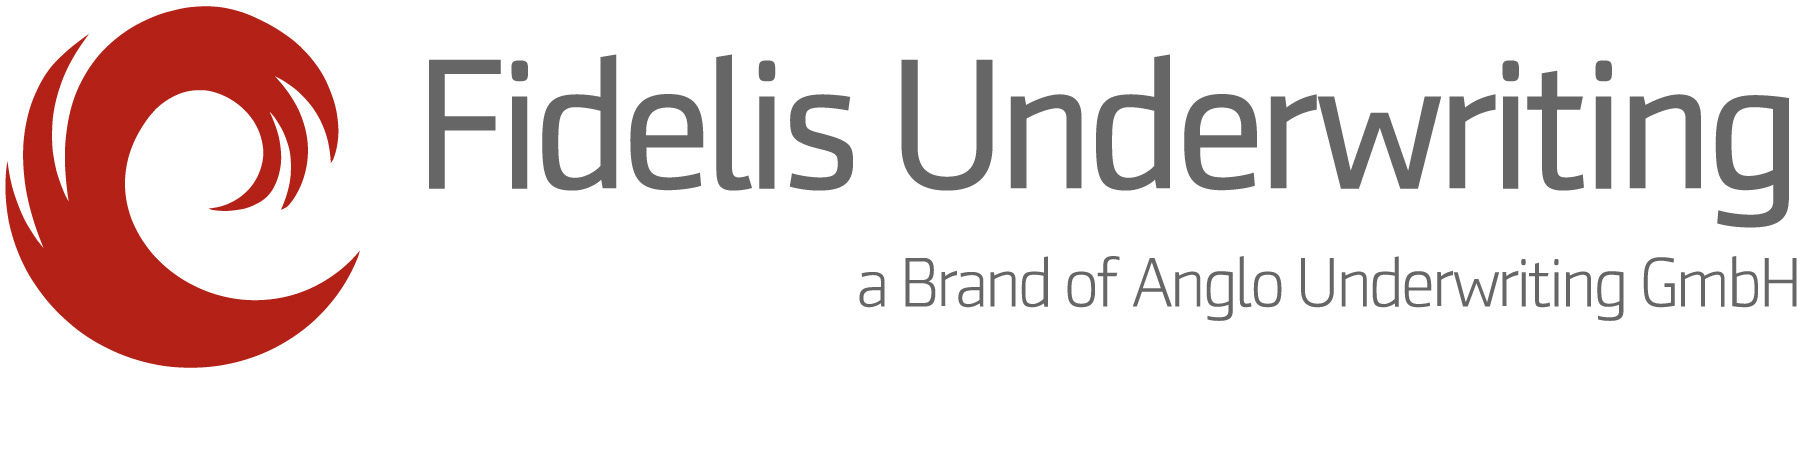 Fidelis a Brand of Anglo Underwriting